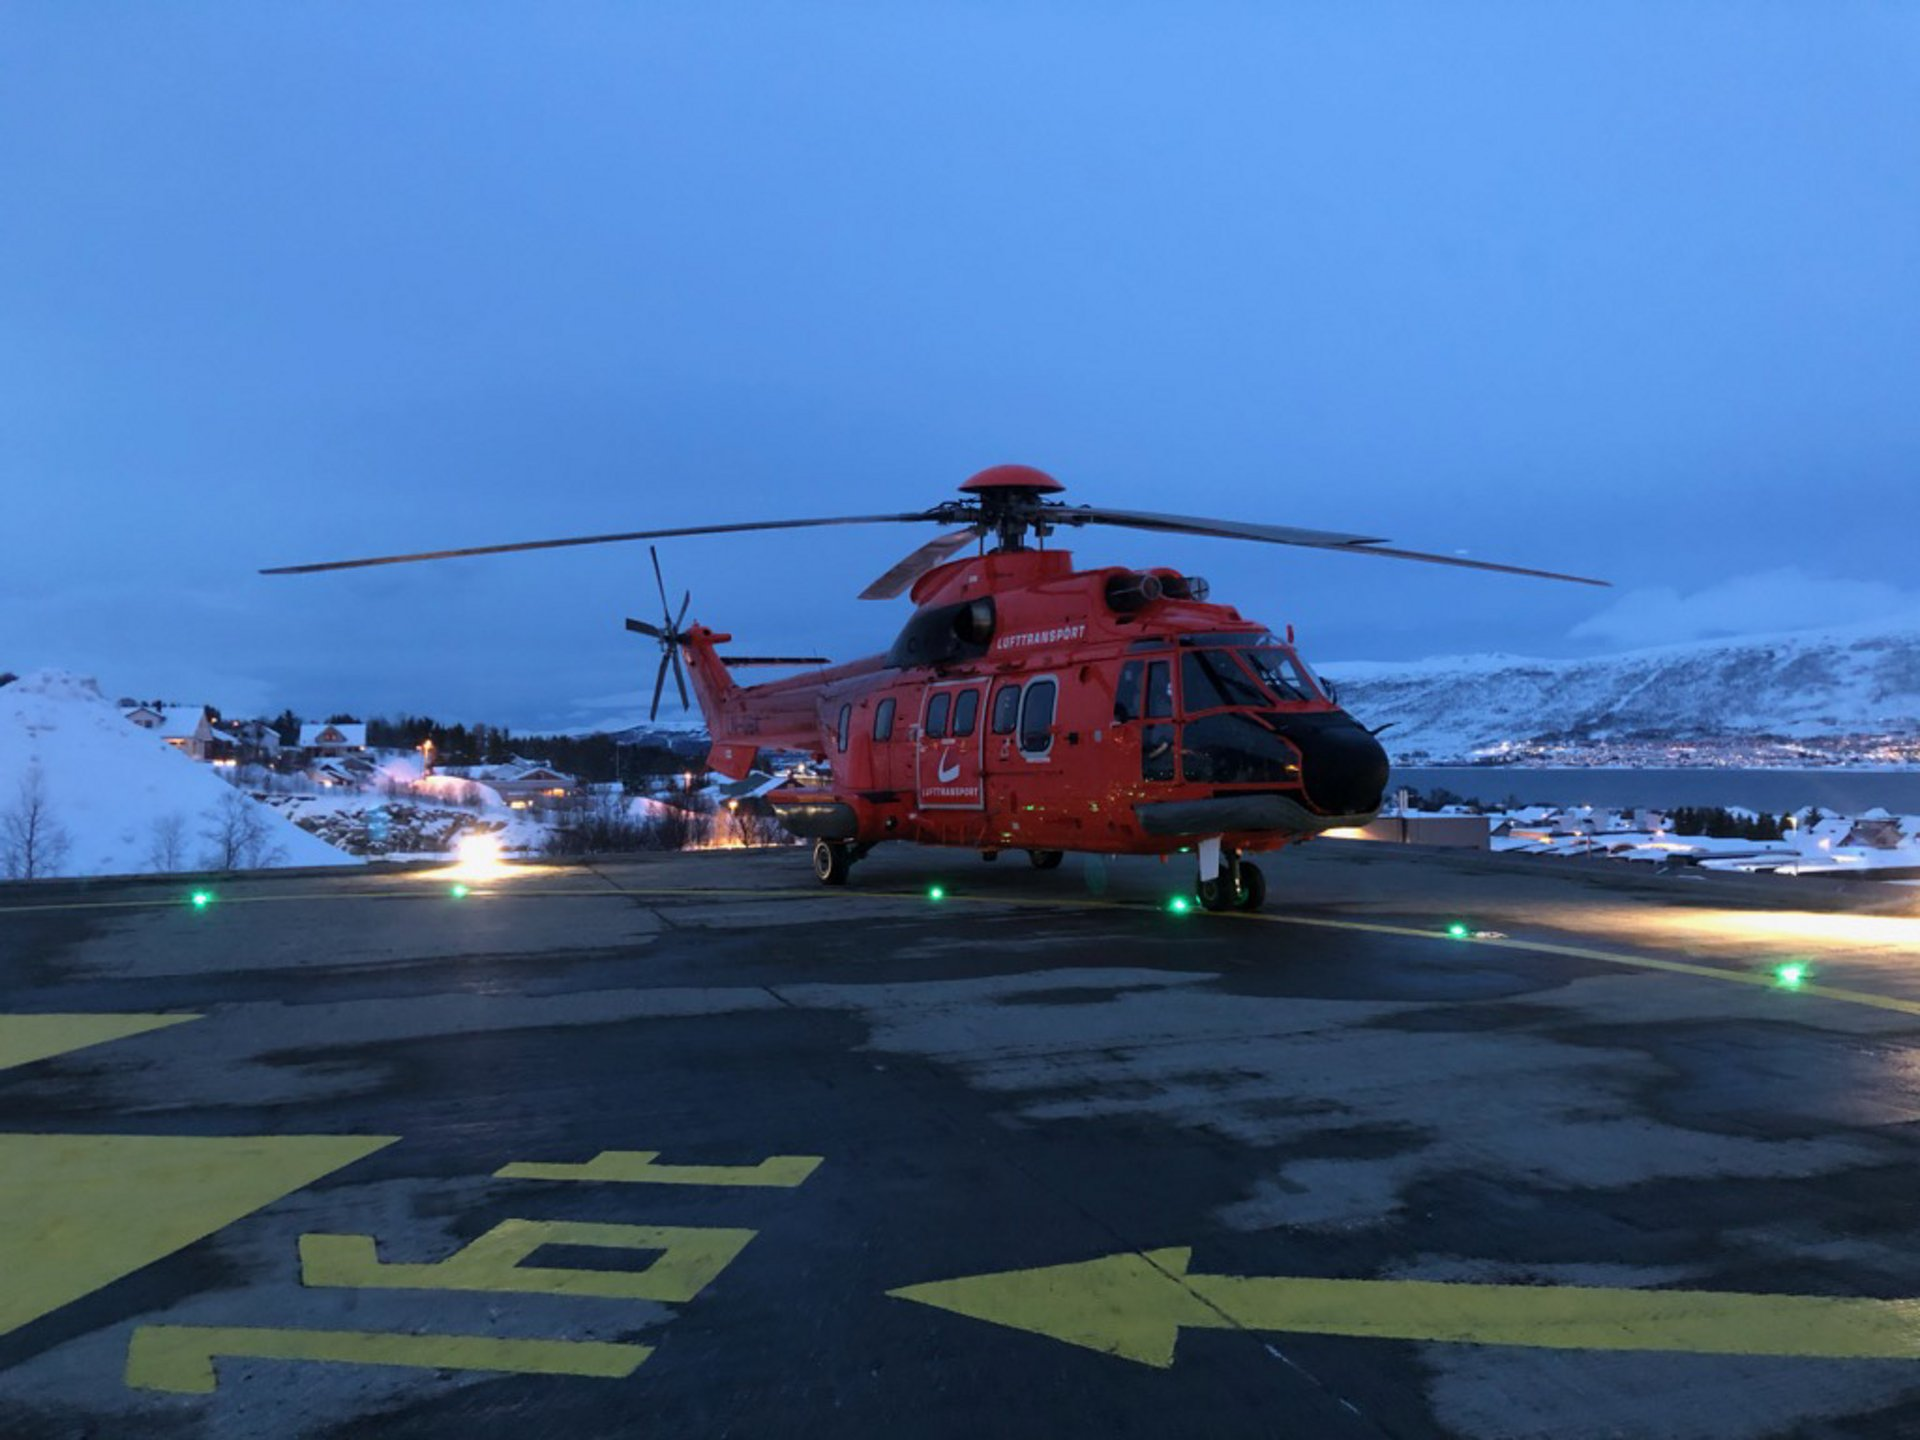 Lufttransport's AS332 L1 Super Puma.